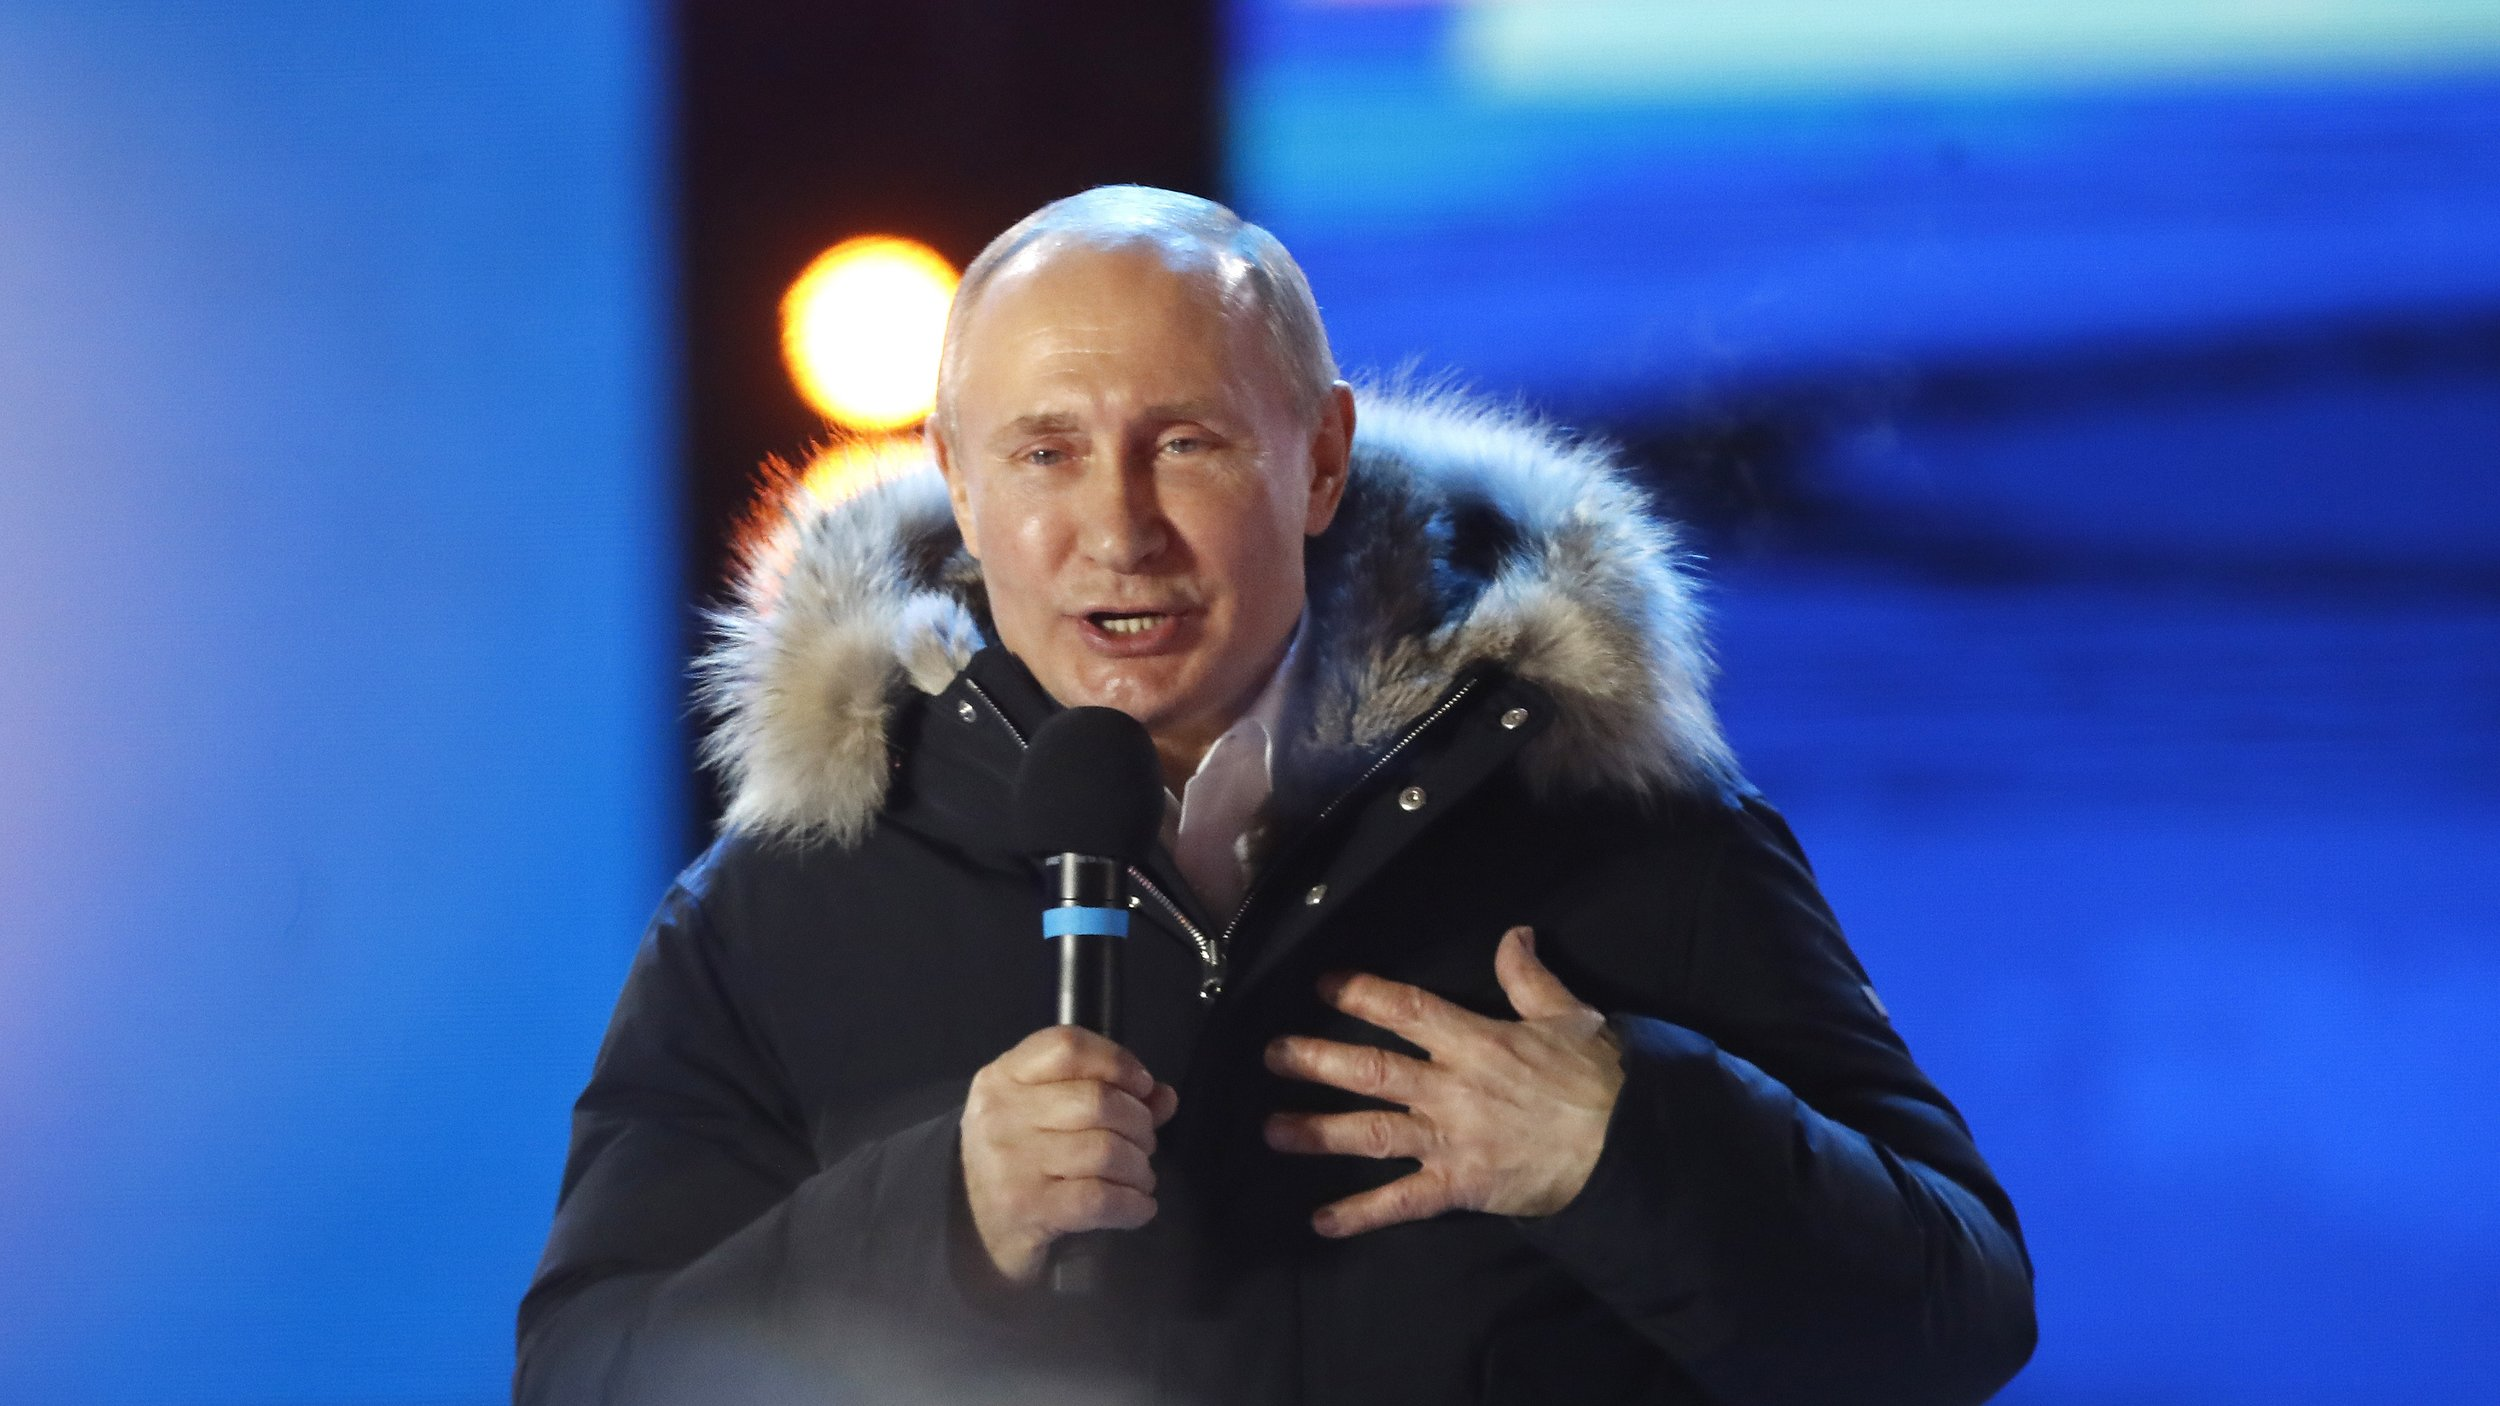 vladimir-putin-claims-victory-with-rivals-trounced-in-russian-election-136425900514202601-180318211044.jpg